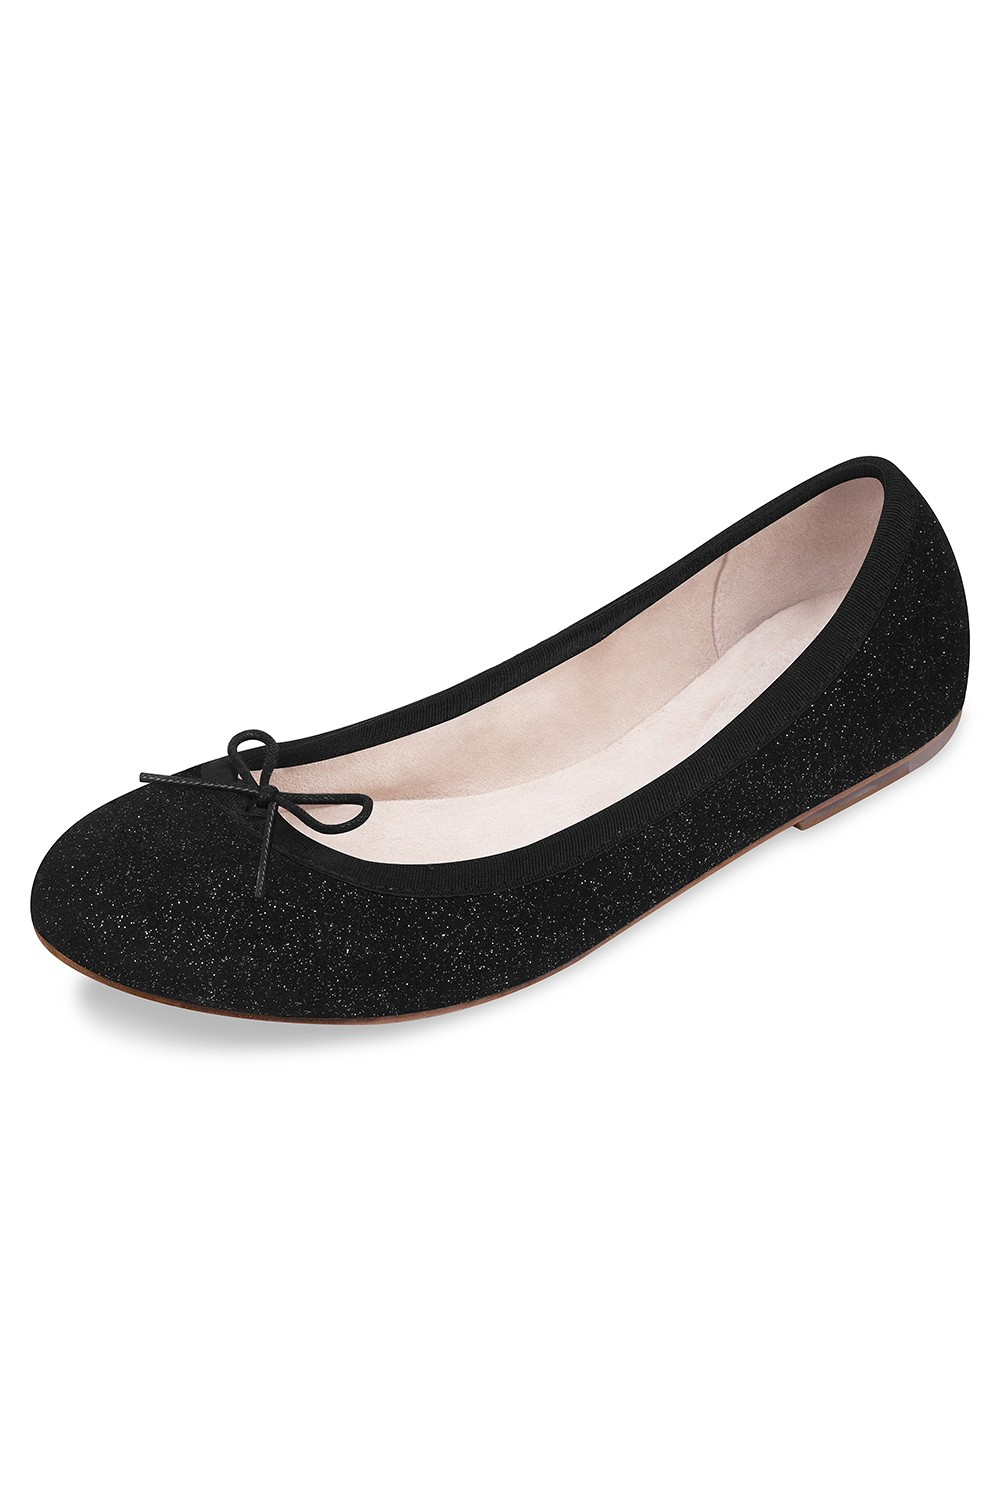 Sonia Ladies Ballet Flat Womens Fashion Shoes